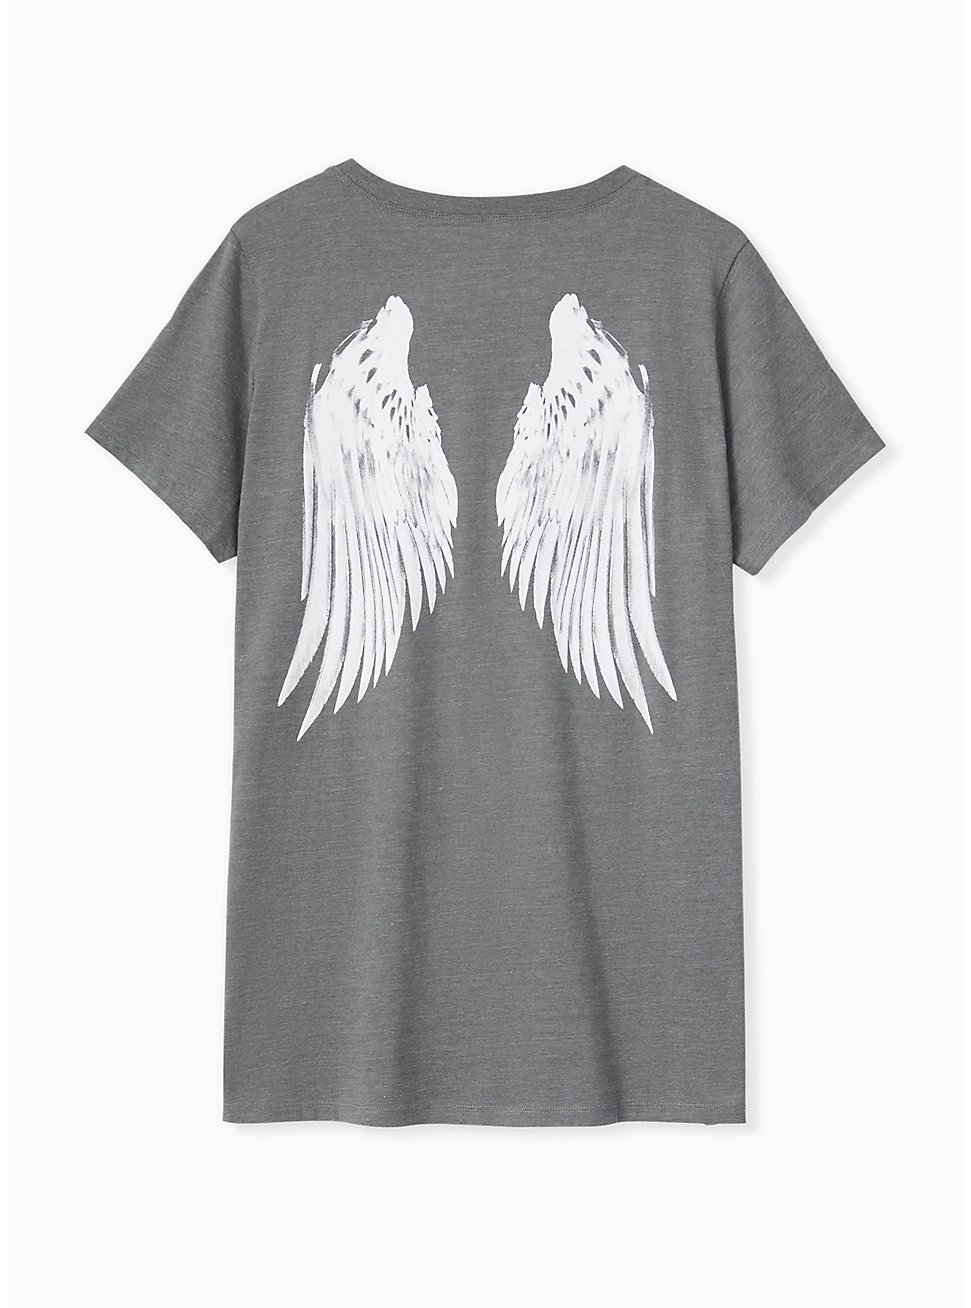 Plus Size Heather Grey Wings Crew Tee, MEDIUM HEATHER GREY, hi-res